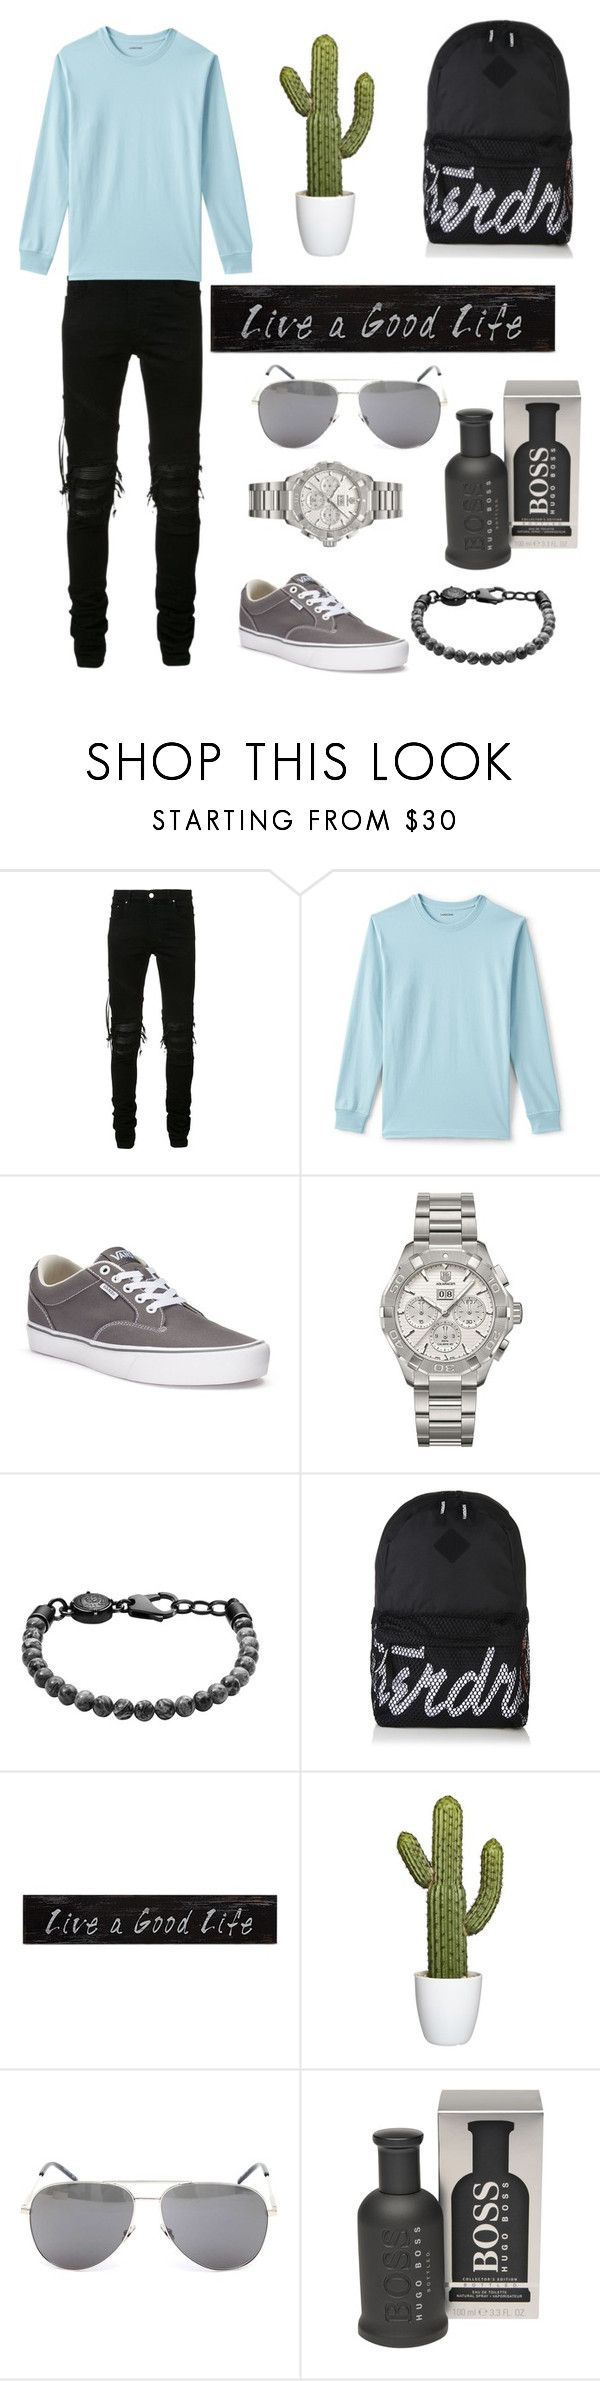 """A reason"" by slowsilence ❤ liked on Polyvore featuring AMIRI, Lands' End, Vans, TAG Heuer, Diesel, Superdry, Creative Co-op, Yves Saint Laurent, BOSS Hugo Boss and men's fashion"